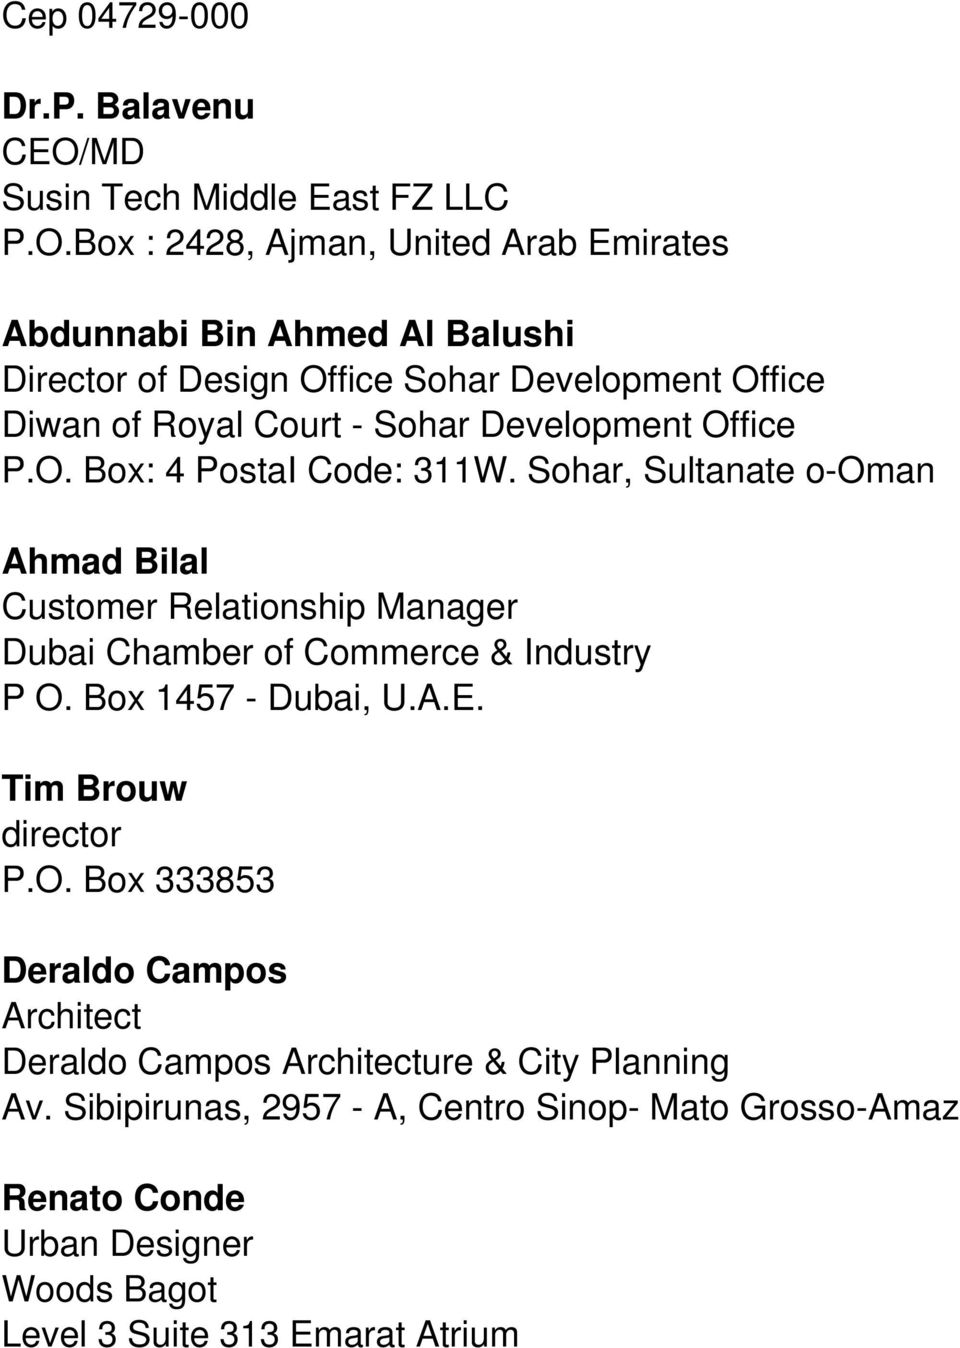 Box : 2428, Ajman, United Arab Emirates Abdunnabi Bin Ahmed Al Balushi Director of Design Office Sohar Development Office Diwan of Royal Court - Sohar